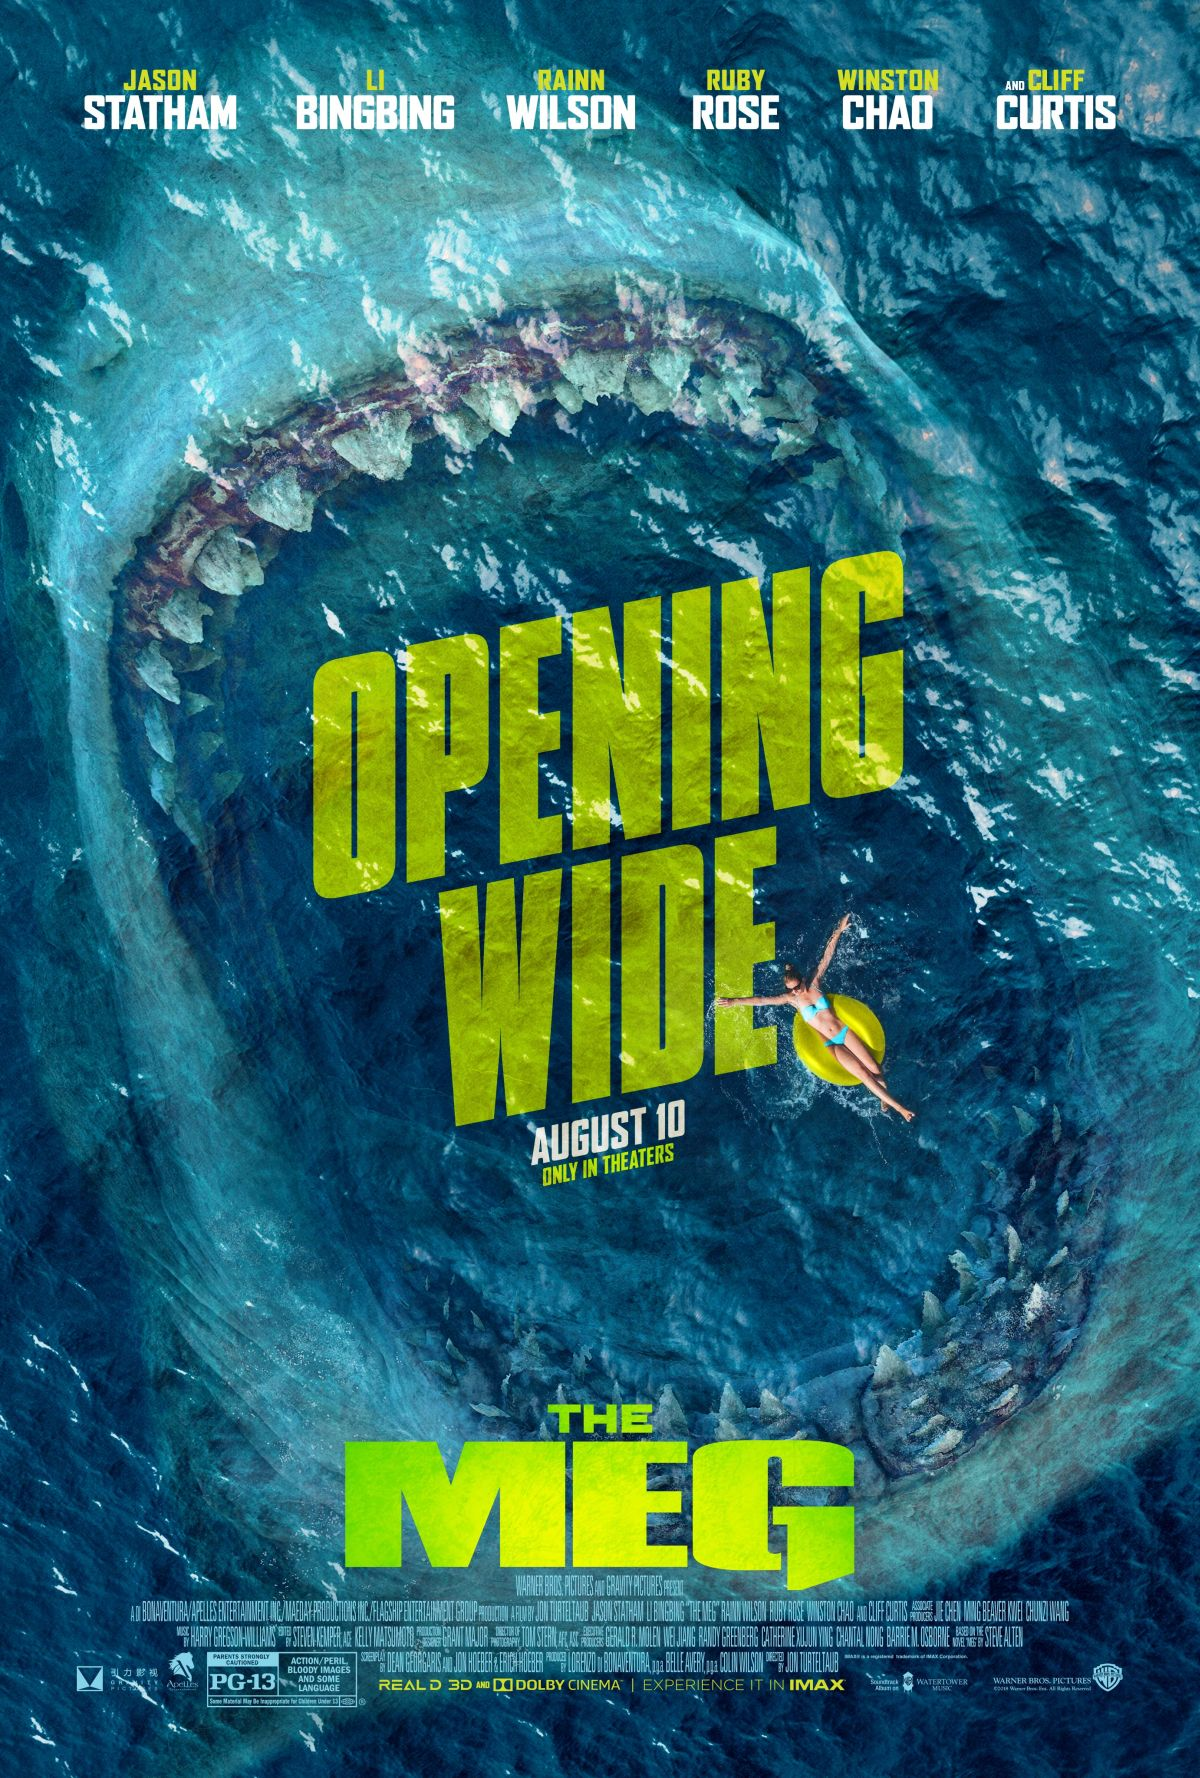 New Hindi Movei 2018 2019 Bolliwood: Take A Bite Out Of Summer In The Meg Poster